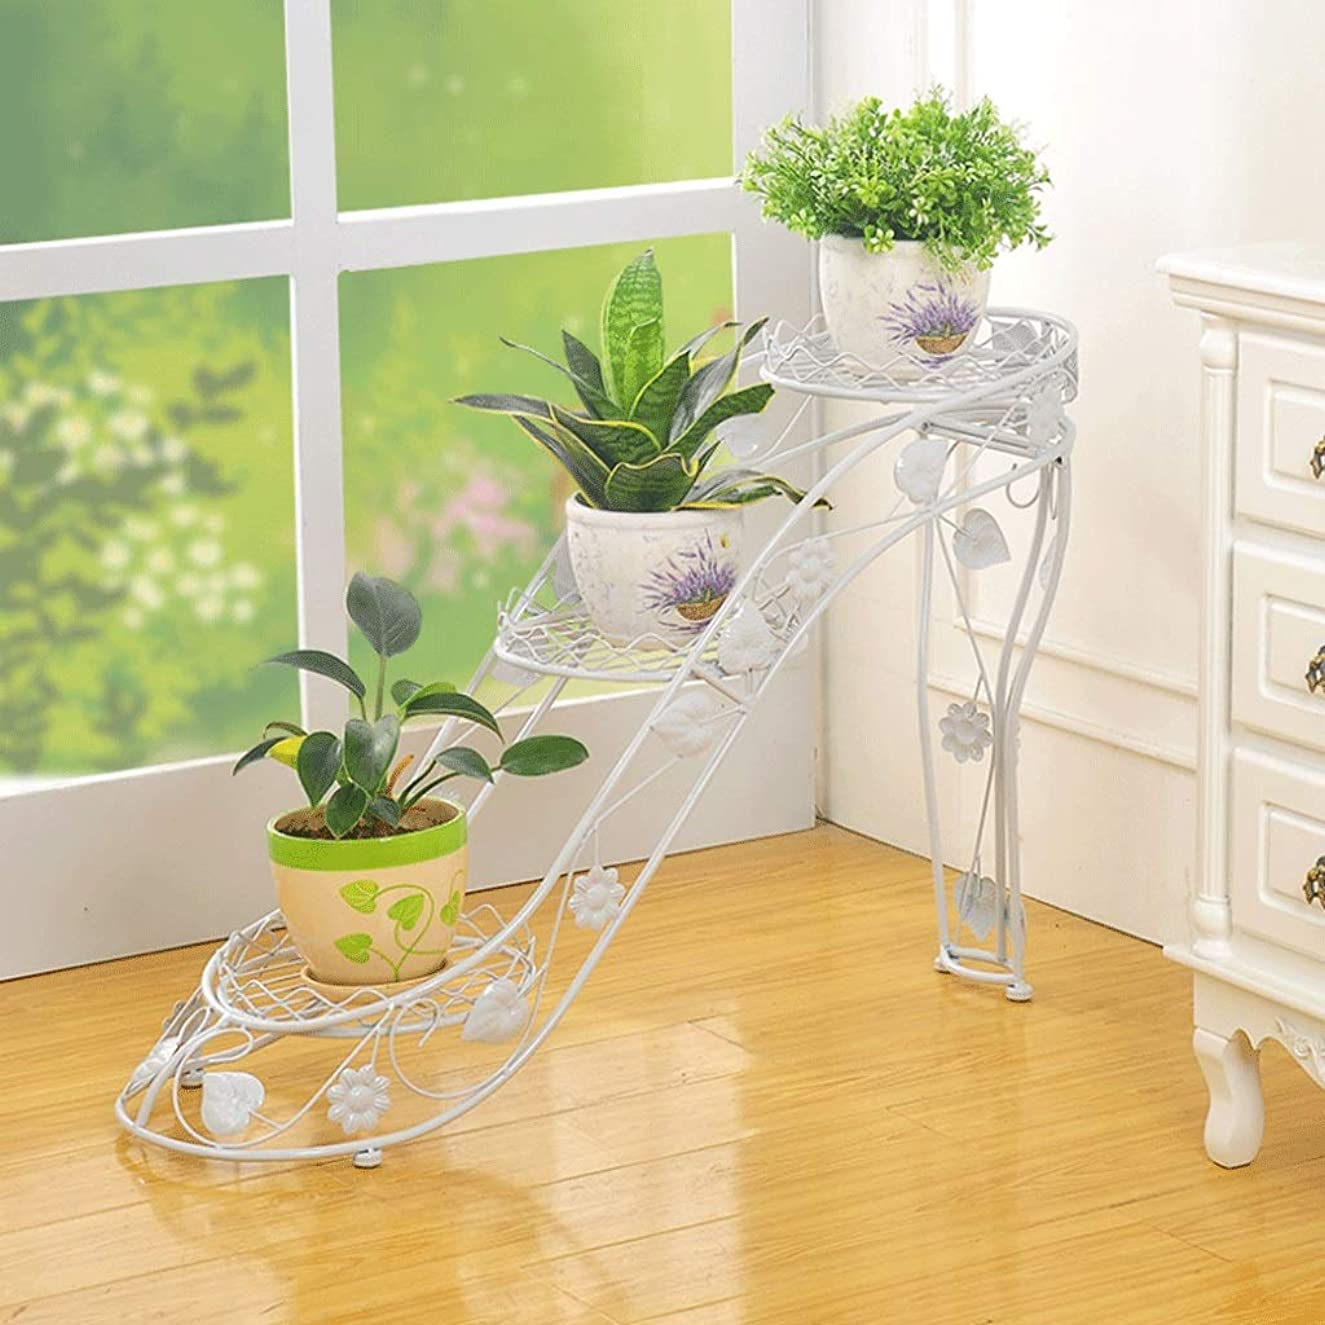 ZHPRZD Flower Stand Flower Rack Multi-Layer Wrought Iron Flower Pot Rack High Heels Decorative Frame Multi-Layer Pot Rack Display Stand 25x66x54cm Flower Rack (Color : White)